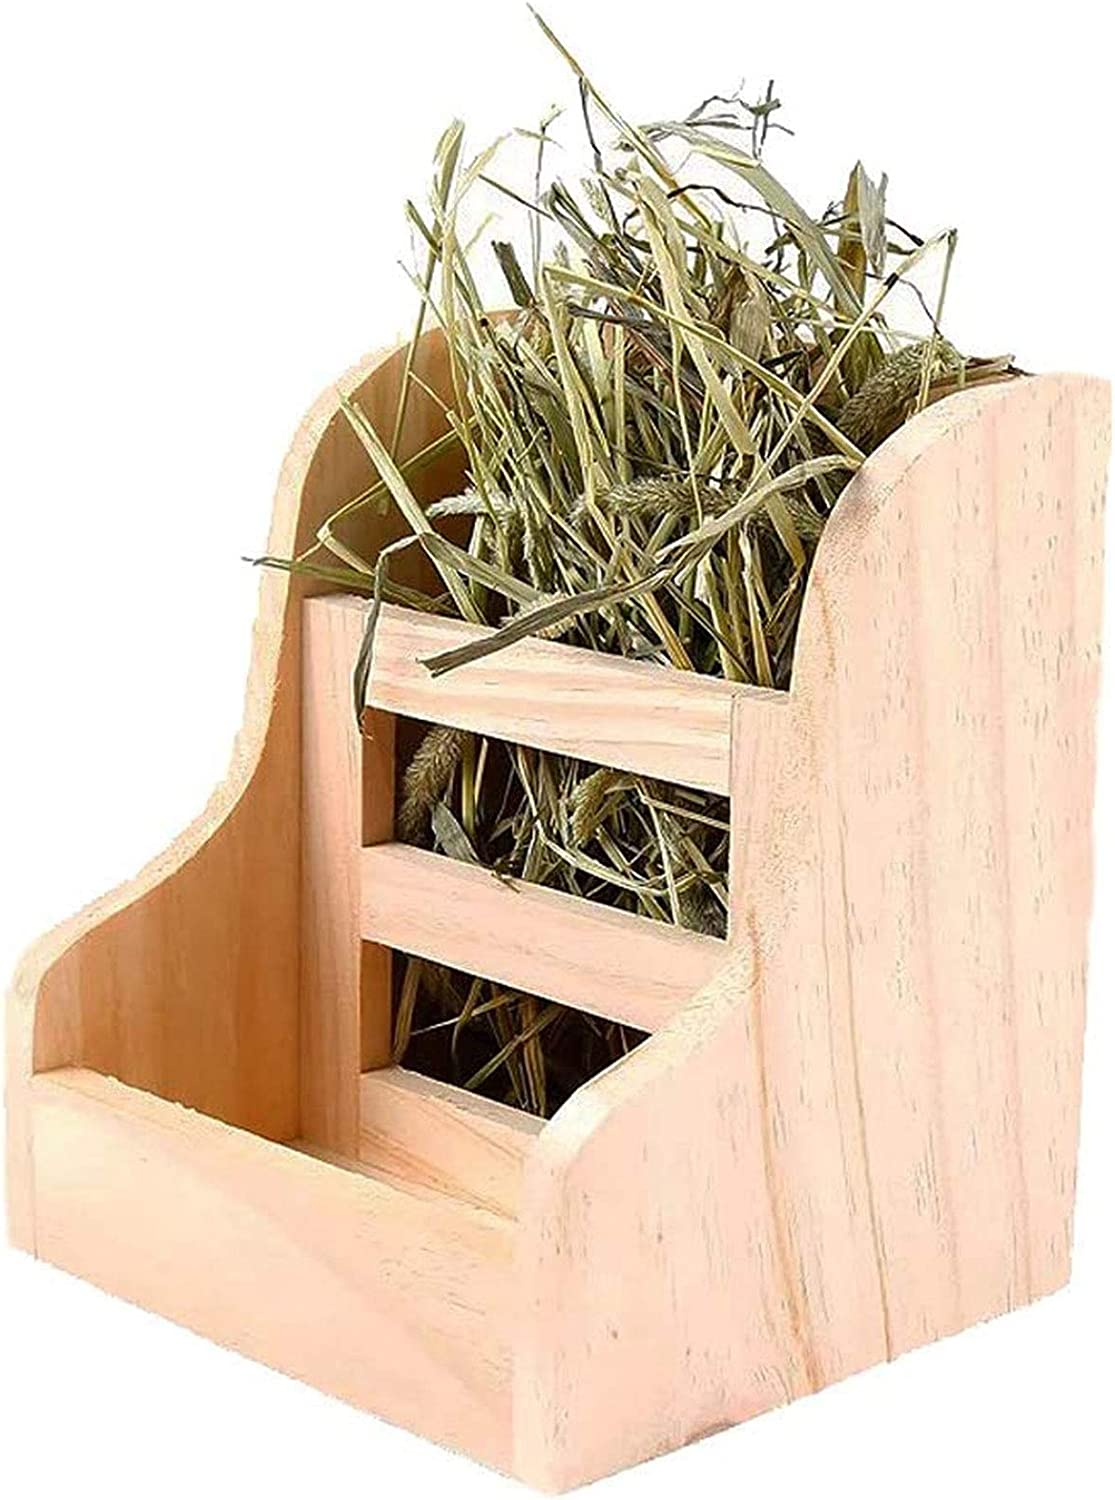 Rabbit Hay Feeder Wood Food Manger Hay Dispenser Wooden Rack Holder for Bunny Guinea Pig Chinchilla